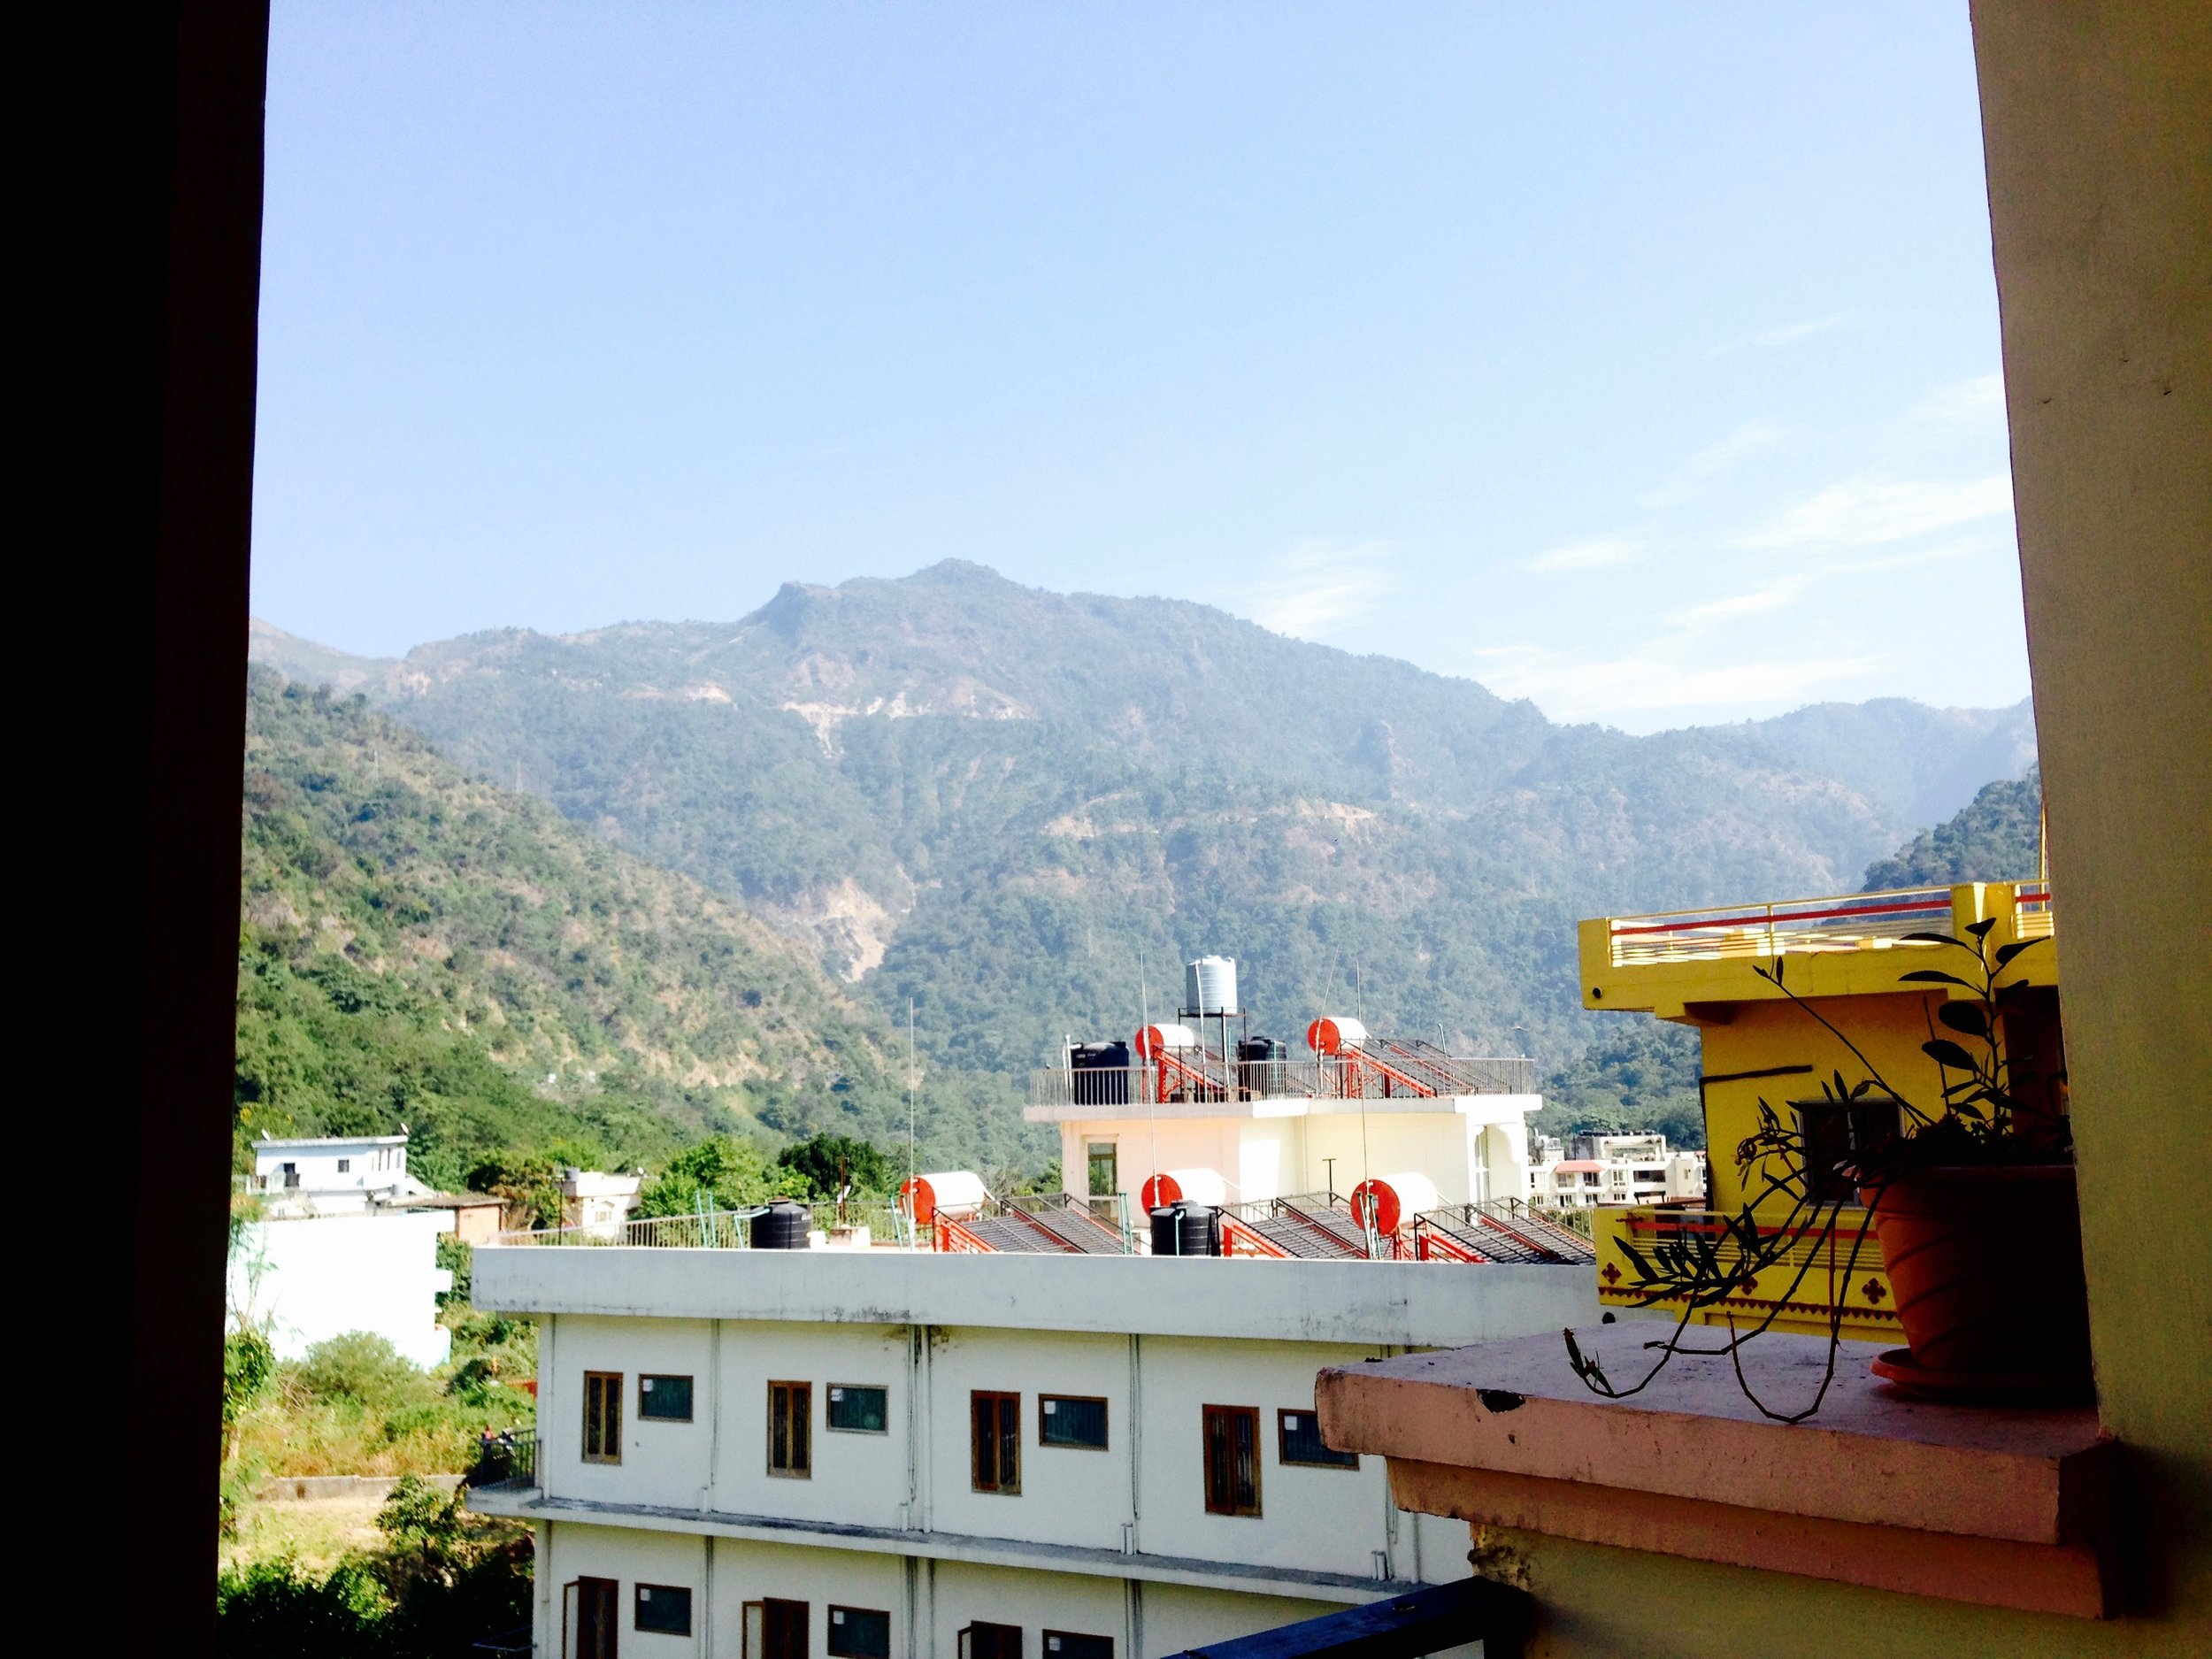 Balcony number two from the bedroom overlooking the Himalayas, no big deal.